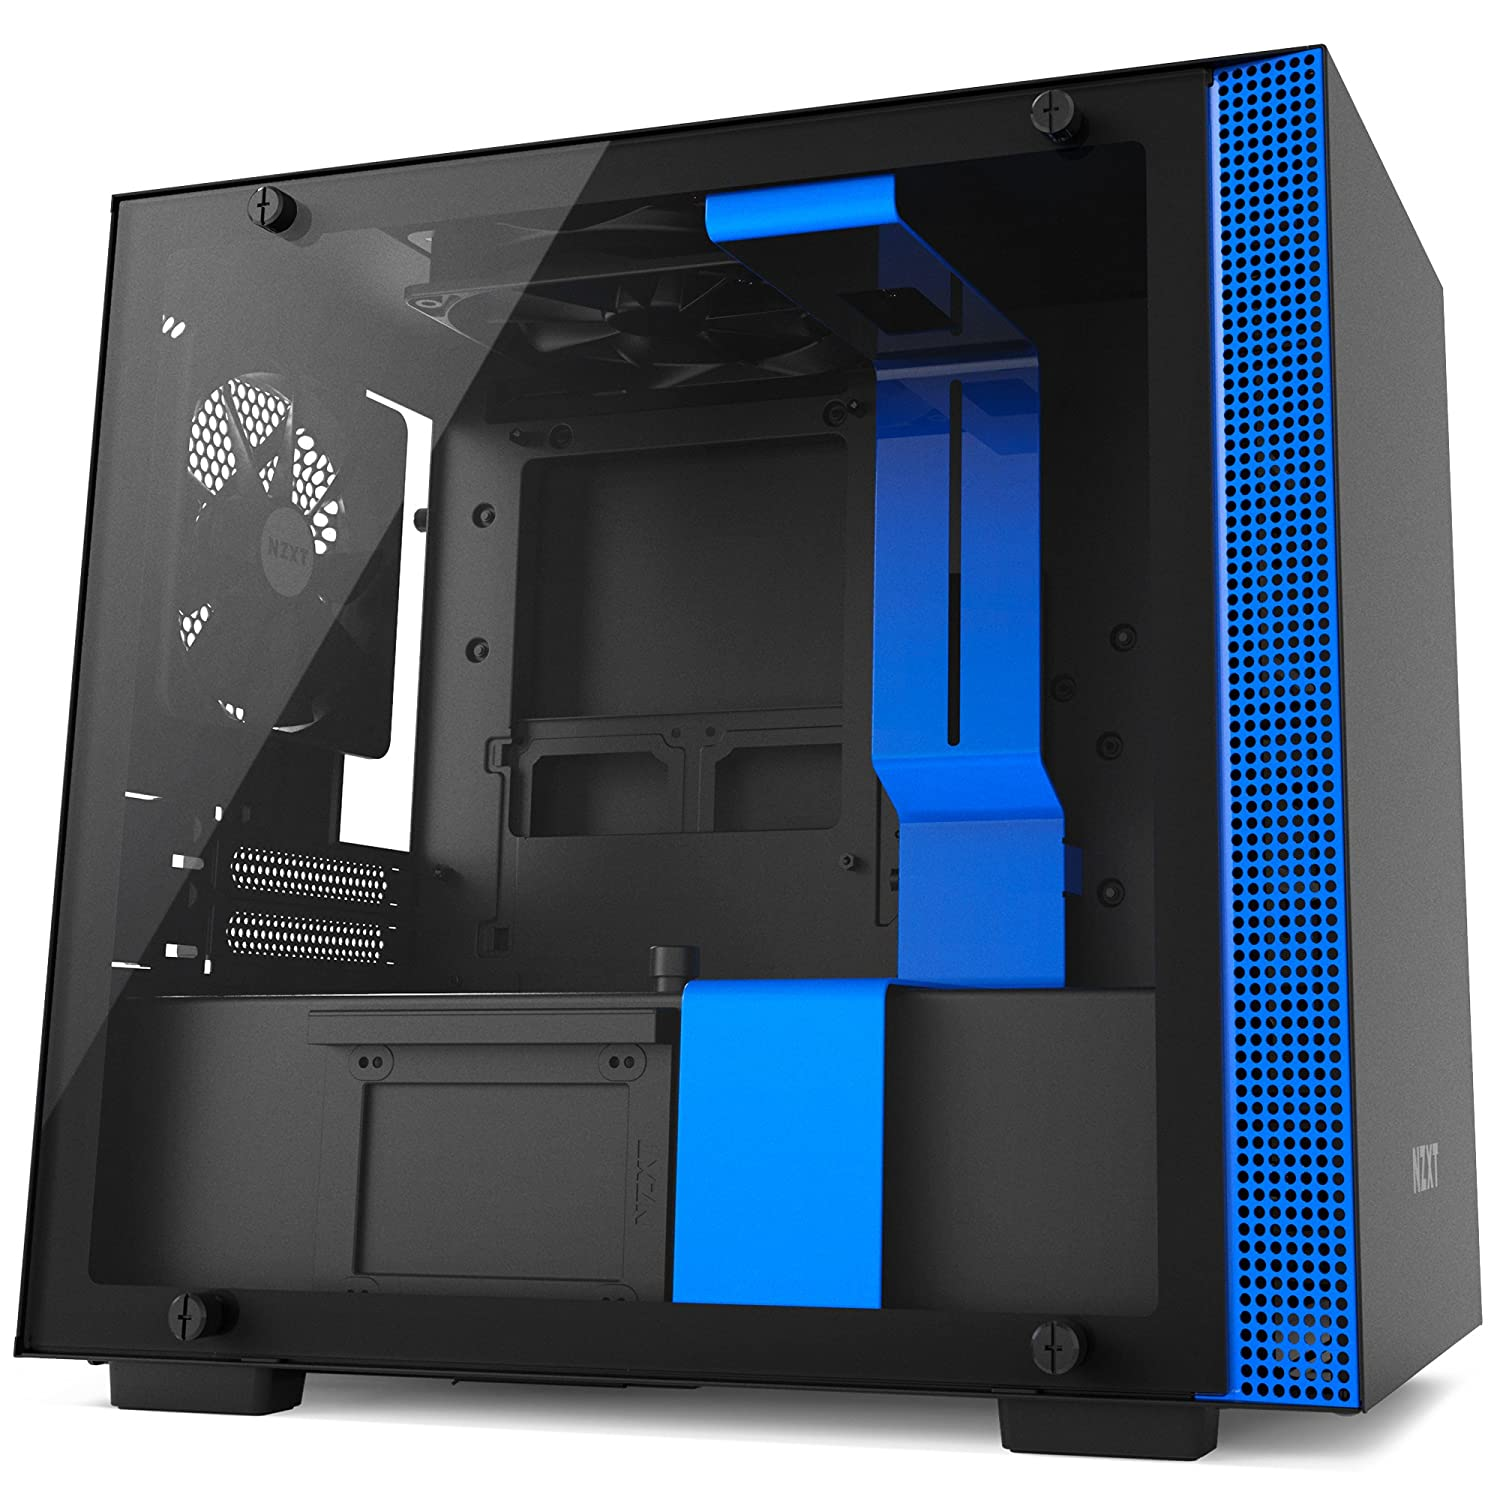 Water-Cooling Ready Tempered Glass Panel NZXT H200i RGB Lighting and Fan Control Mini-ITX PC Gaming Case CAM-Powered Smart Device Enhanced Cable Management System Black//Red